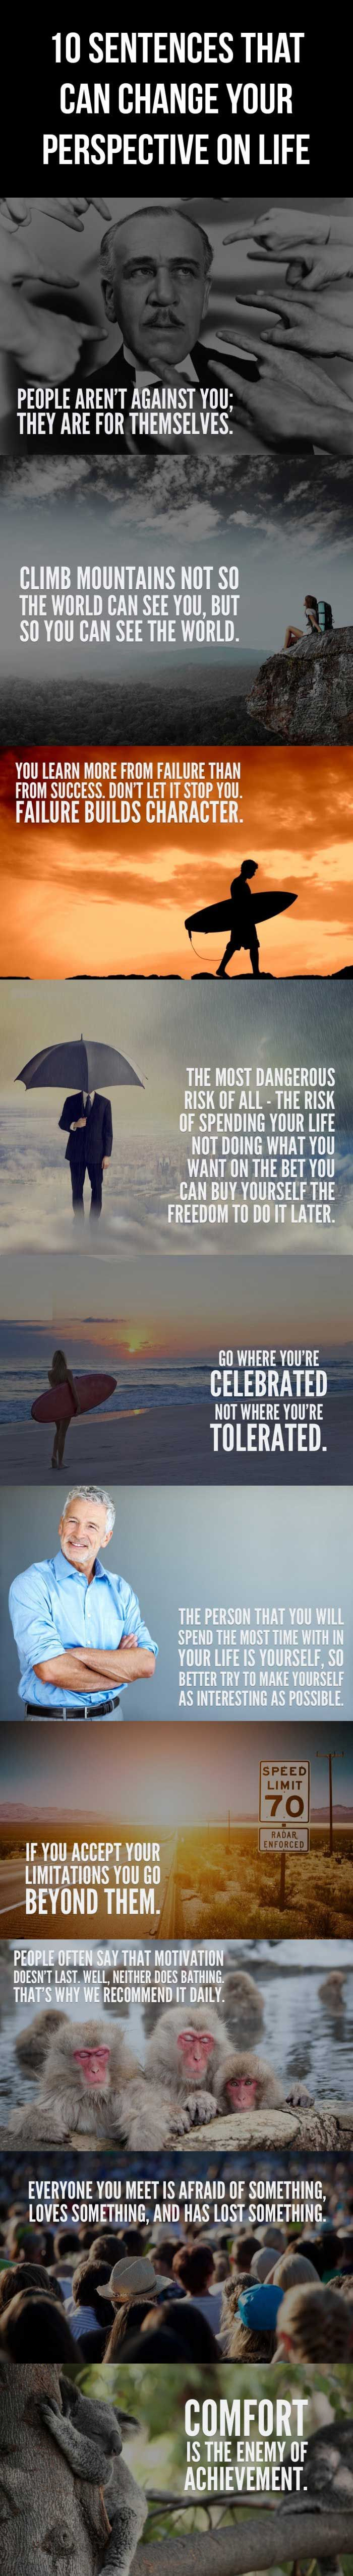 10 Sentences That Can Change Your Perspective On Life. I need to read this every day